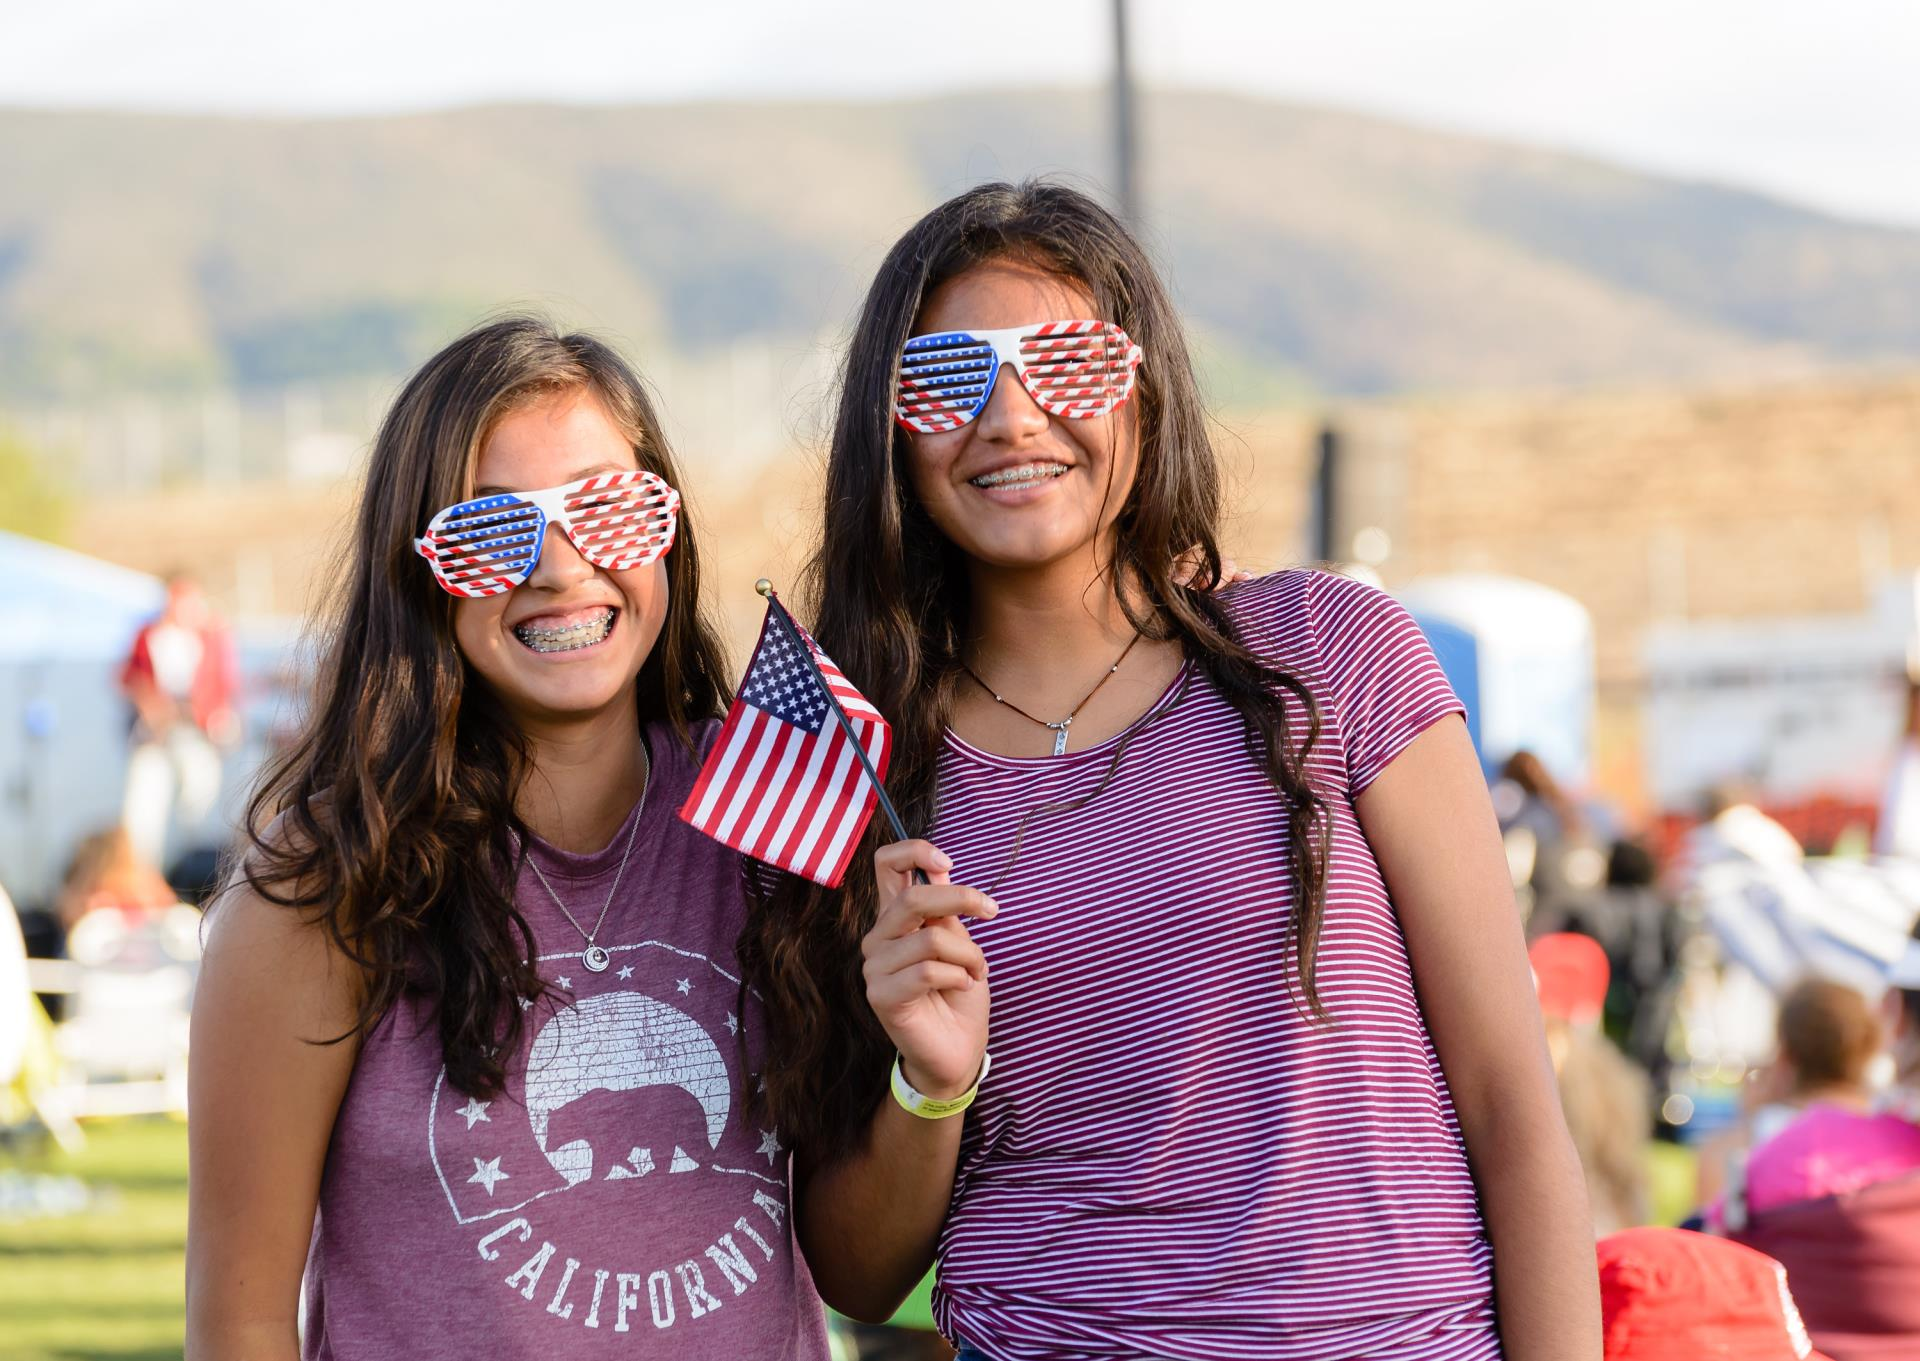 Two girls holding small American flag during Fourth of July event